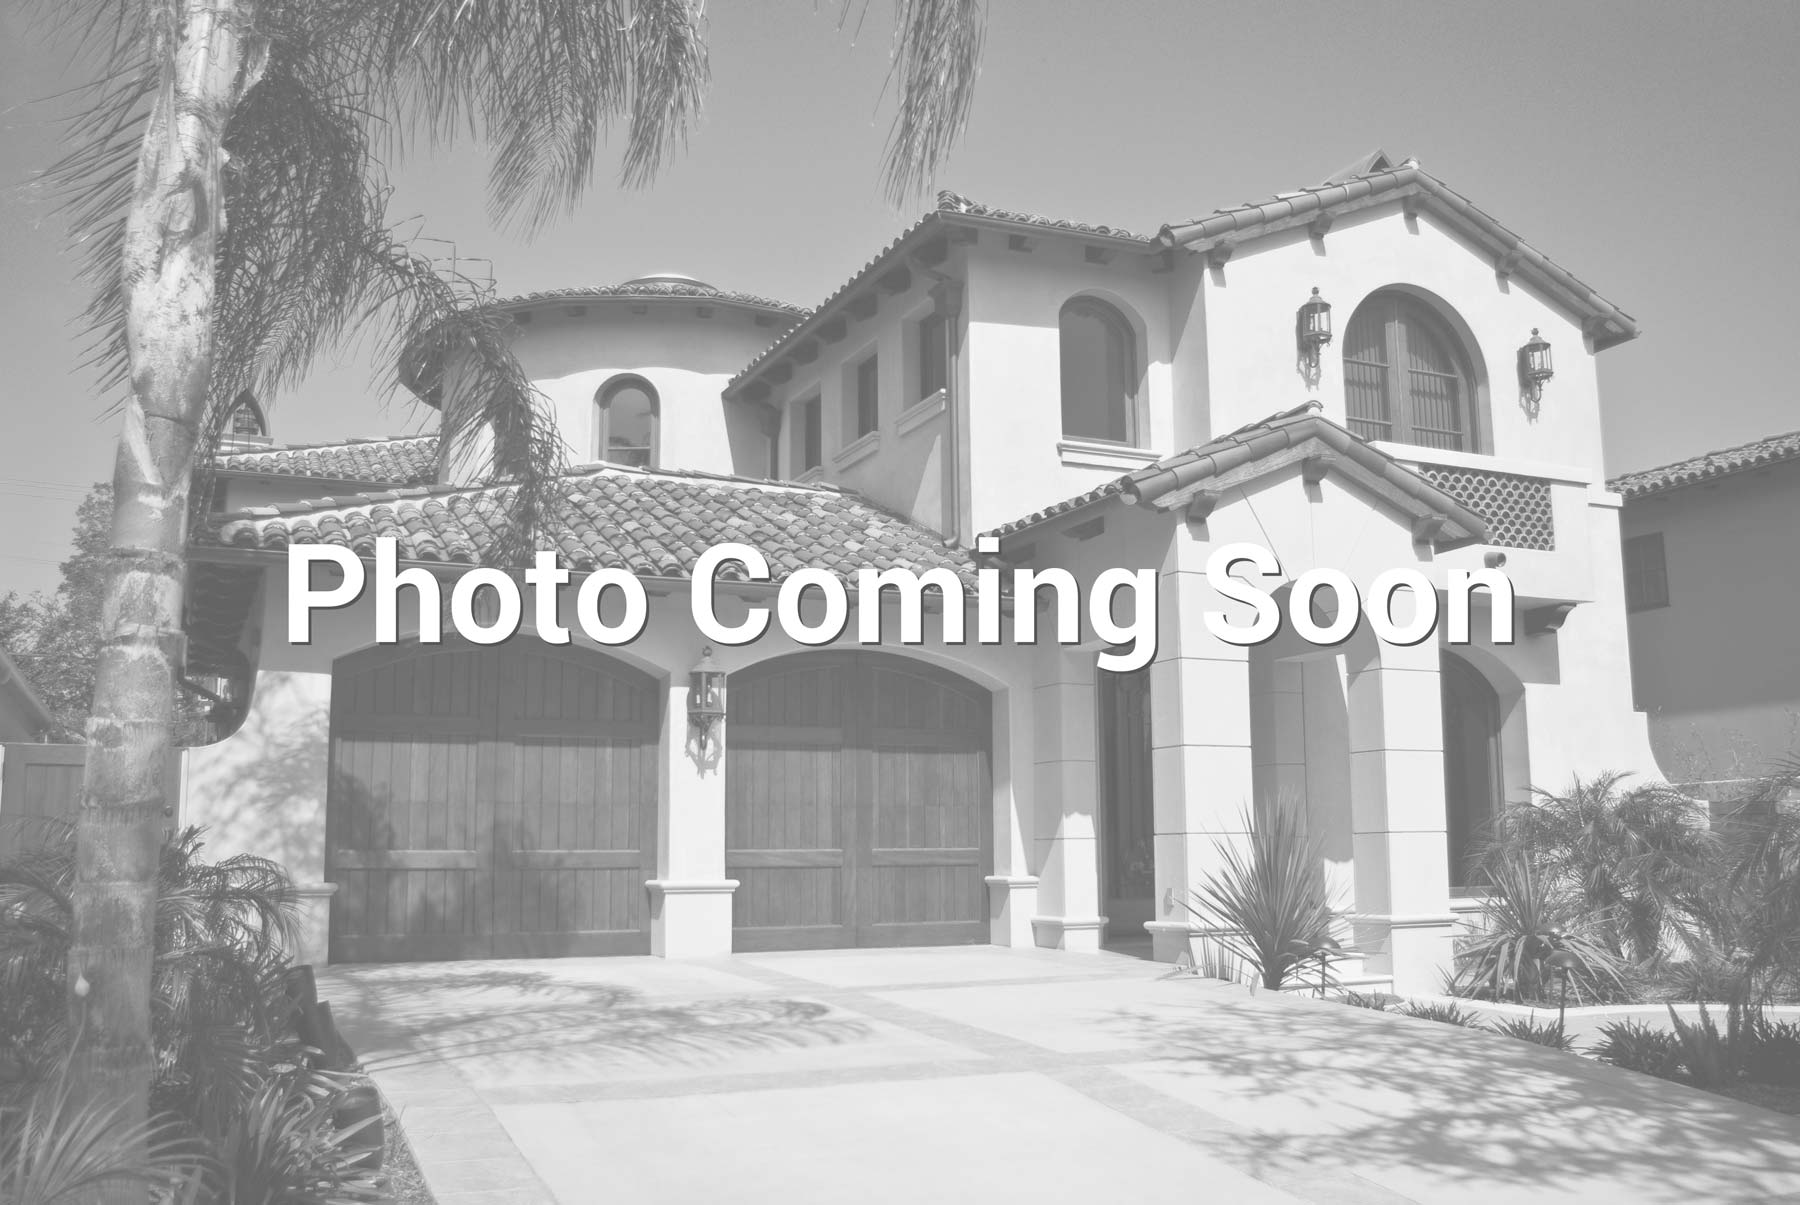 $690,000 - 3Br/3Ba - Home for Sale in Echo Ridge Unit 2 At Troon North Lot 99-189 Tr L-r, Scottsdale